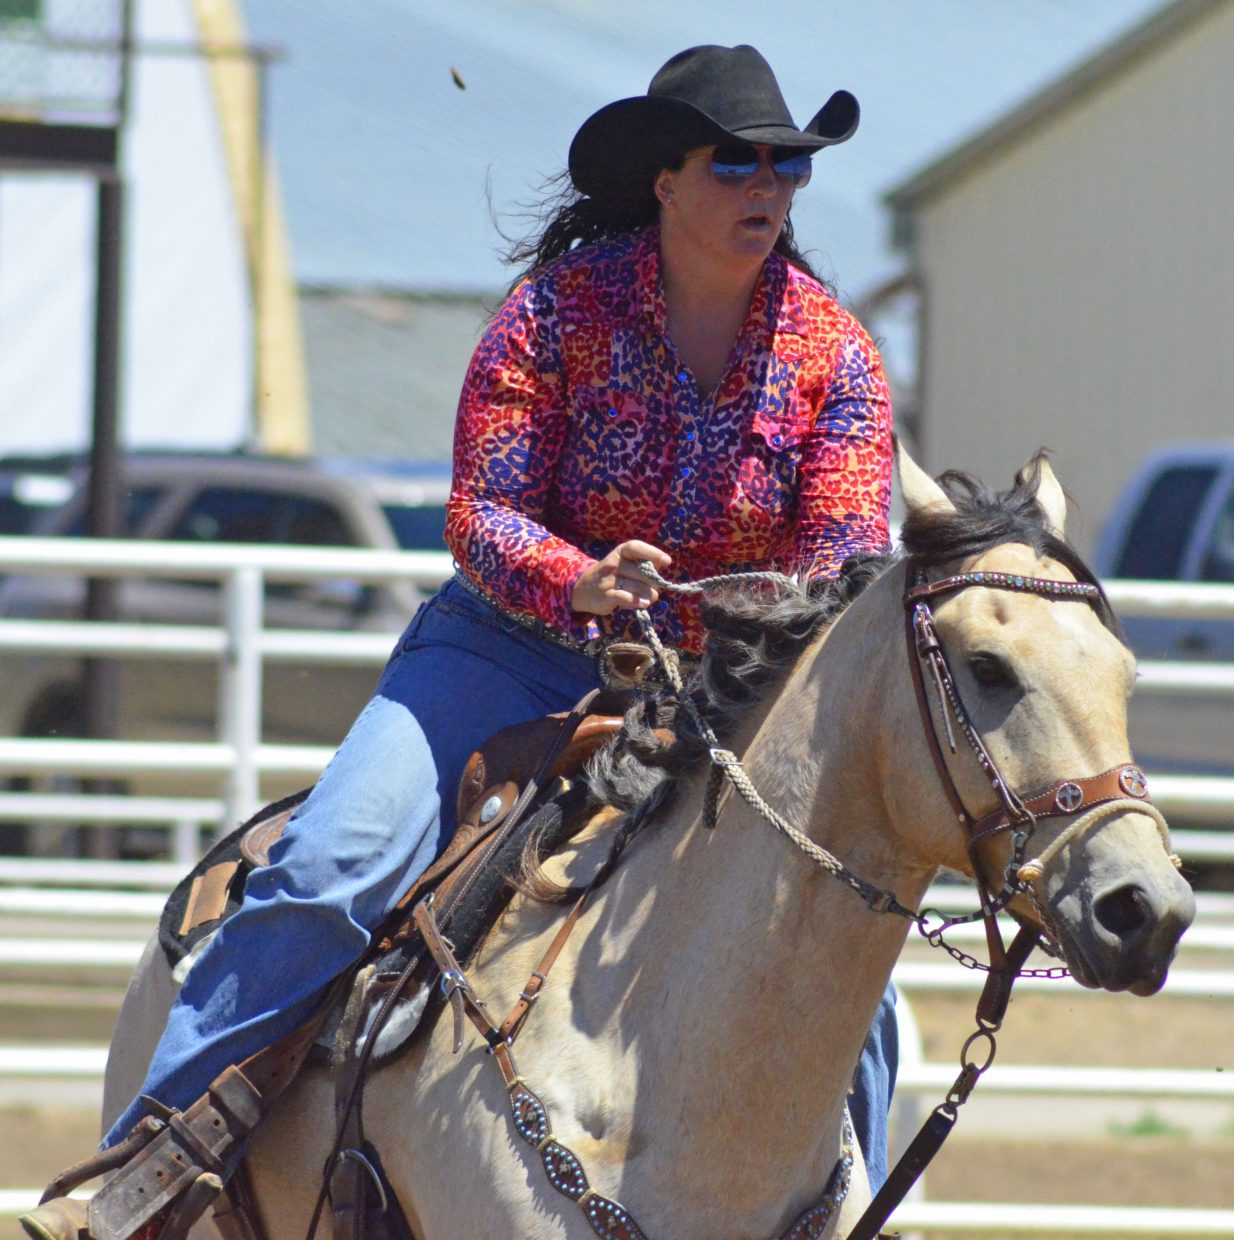 J'Leah Richardson, of Meeker, rides on horse Joe Reed Hancock during the Tri-State Barrel Racing Classic Saturday at Moffat County Fairgrounds.